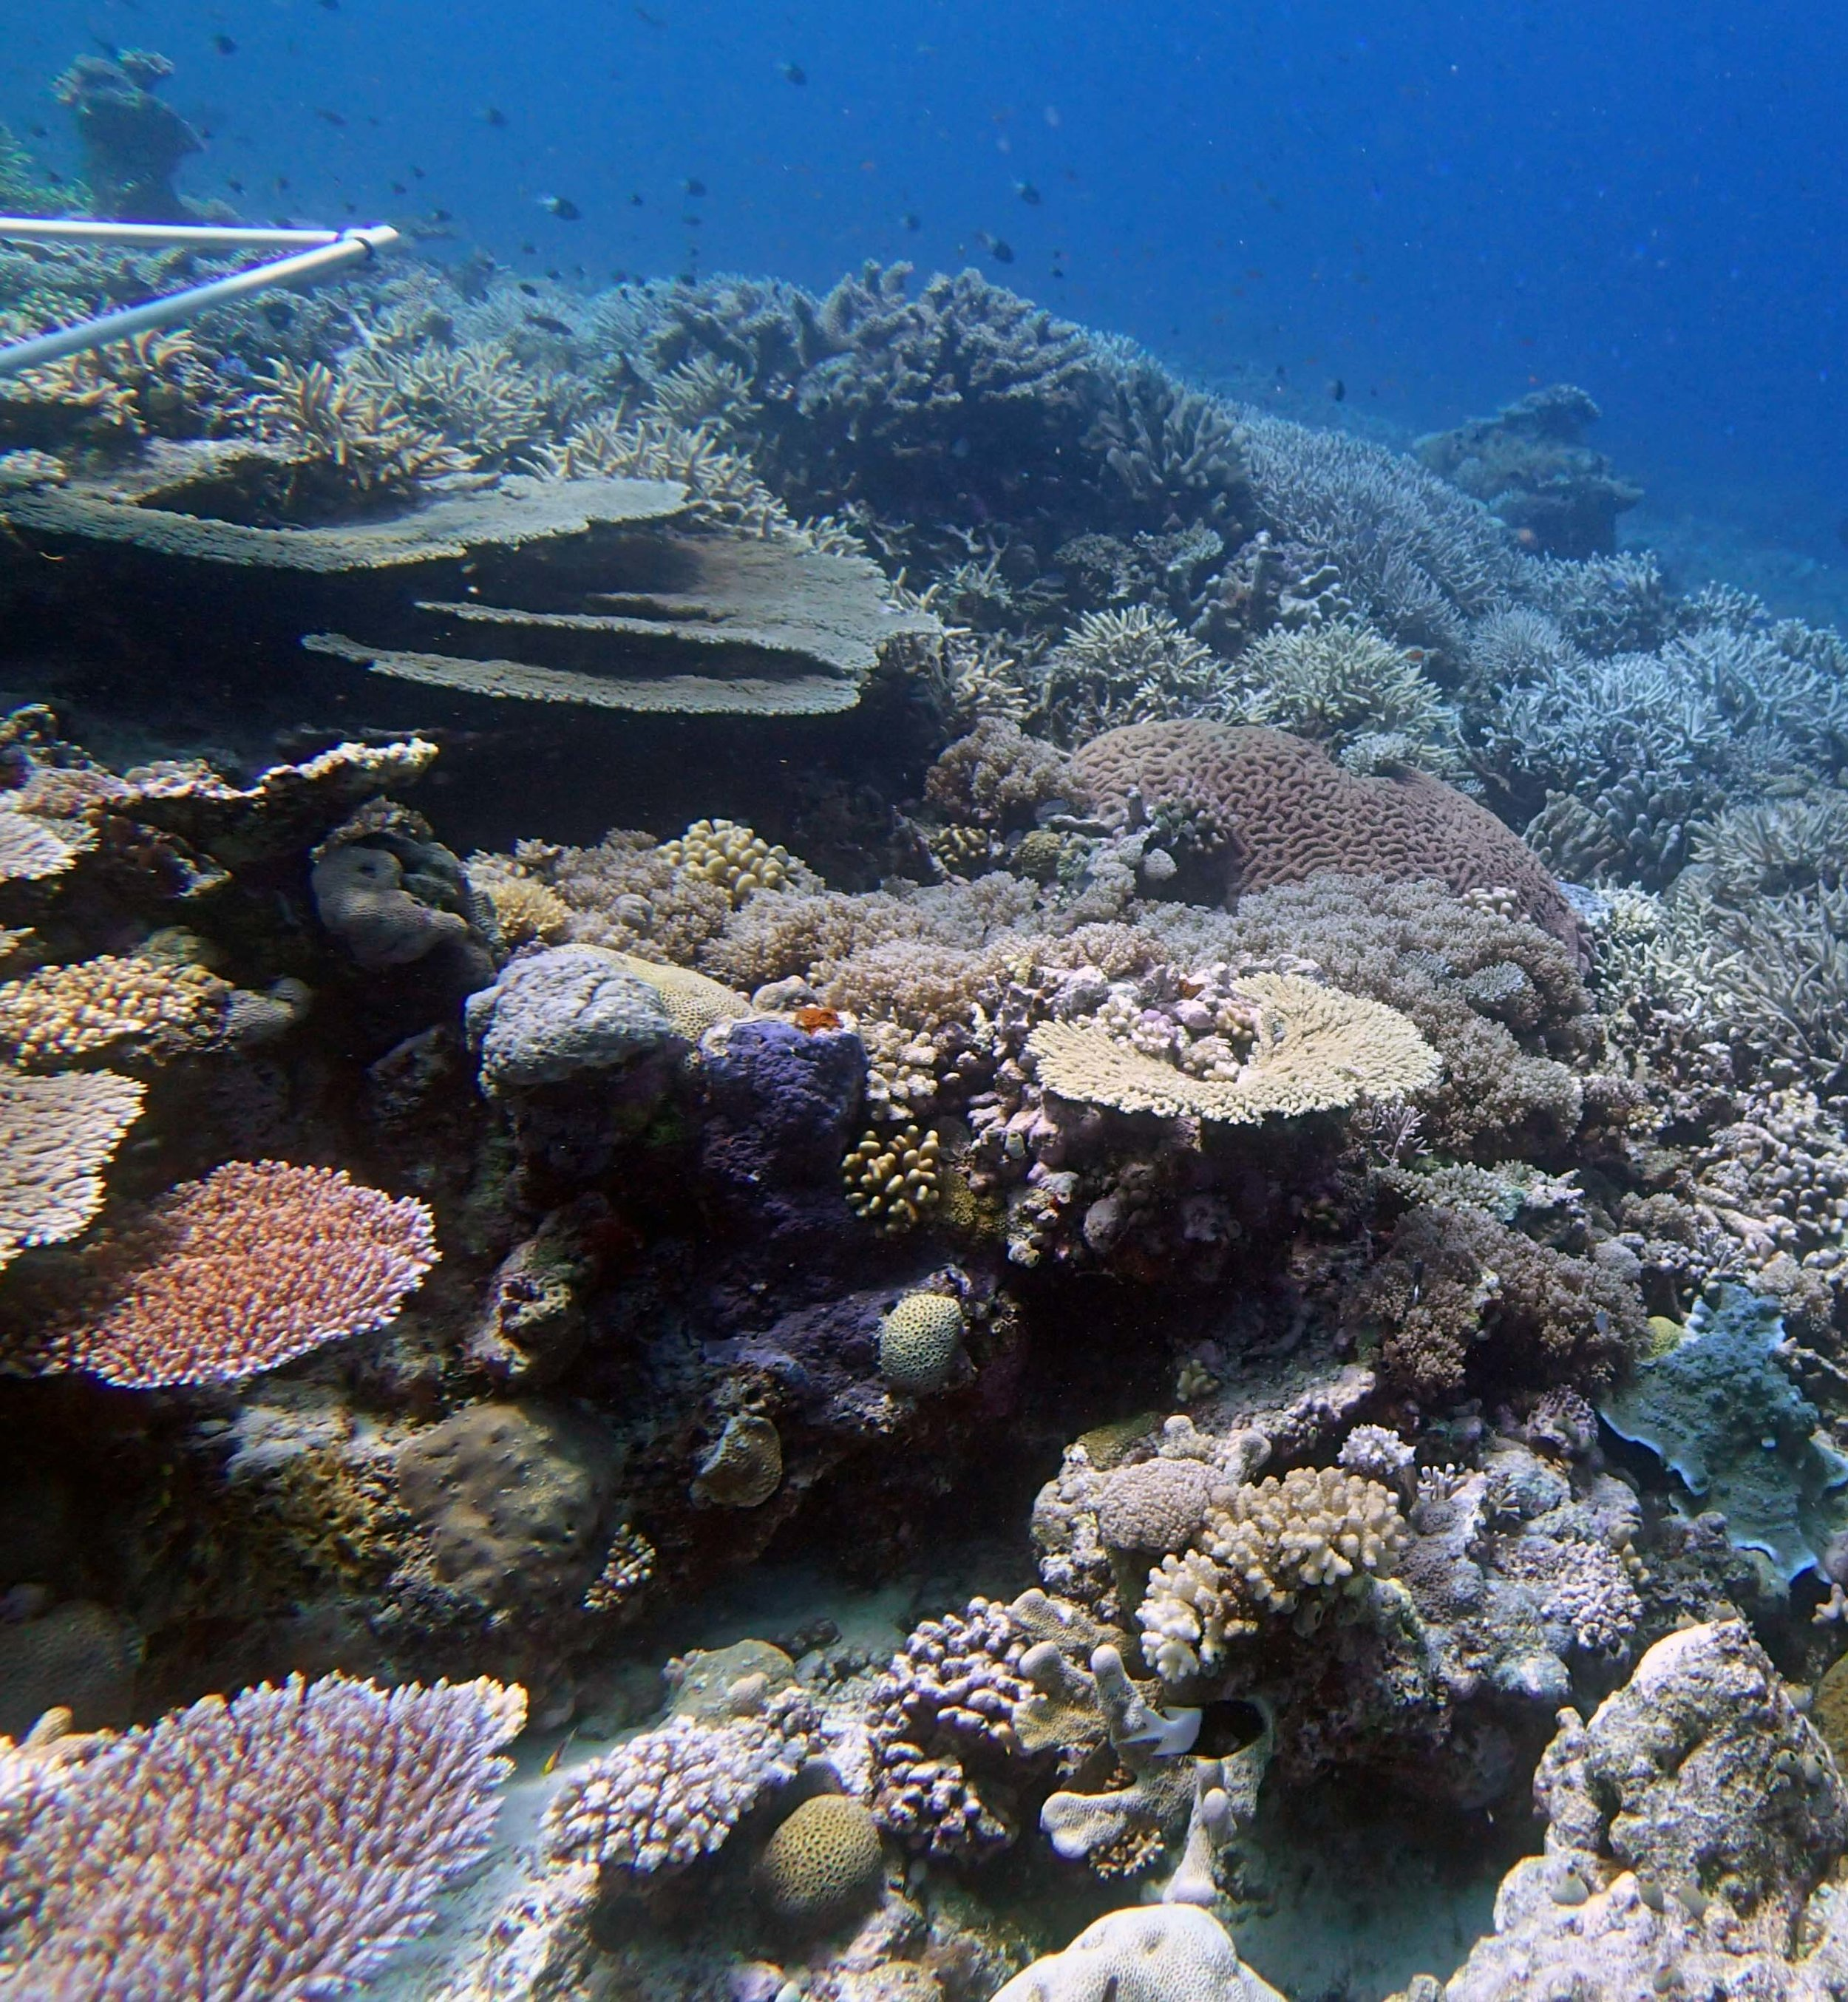 high coral cover 9-28-14.jpg